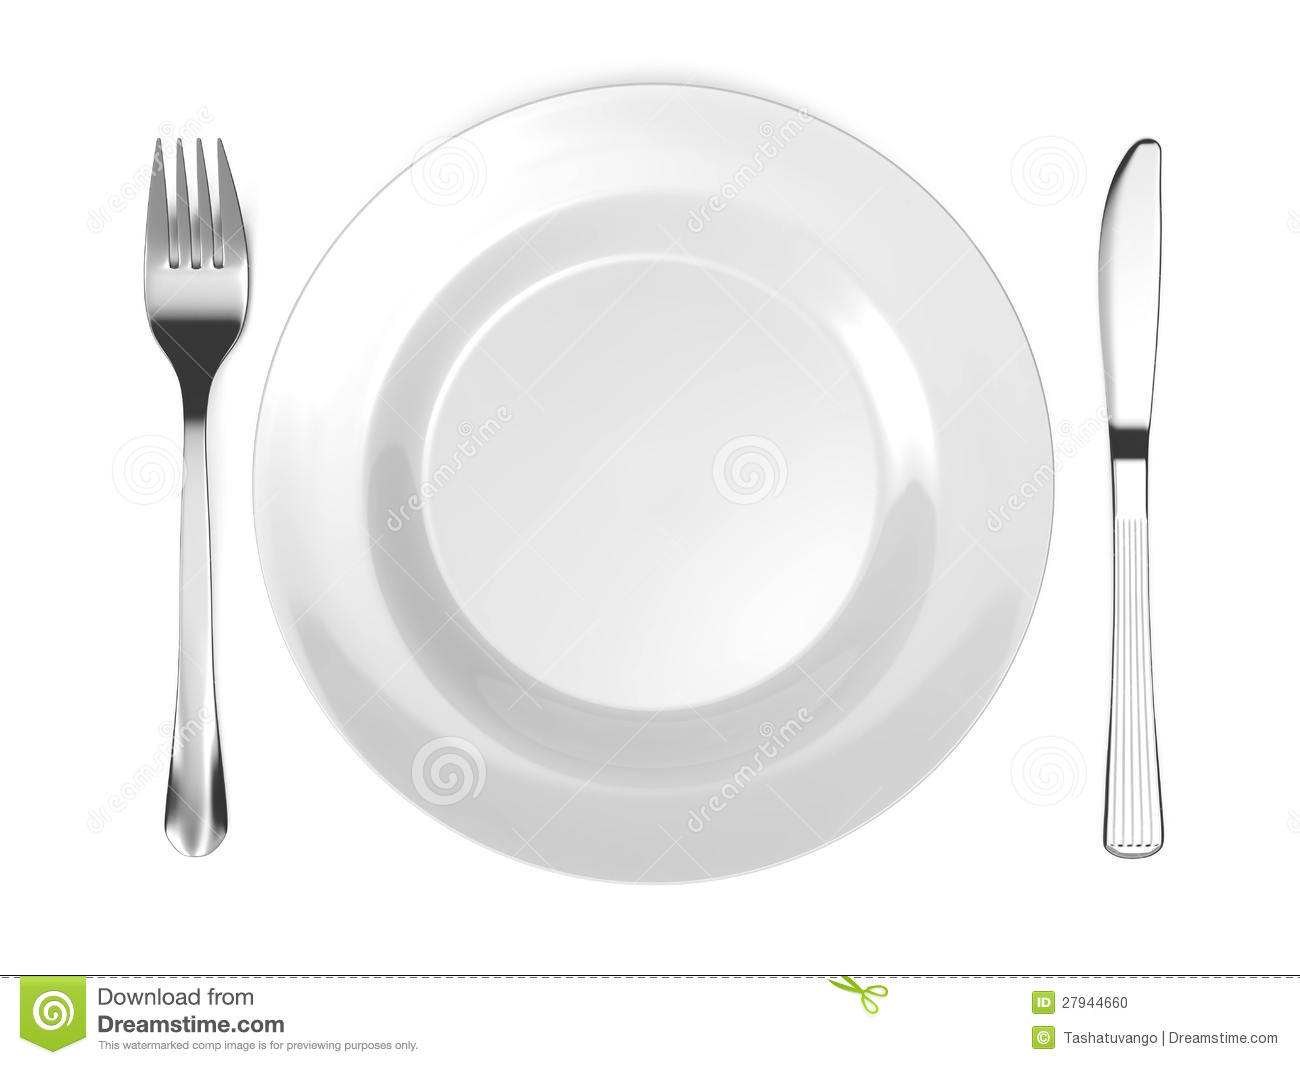 Dinner Setting set of place setting formal dinner stock vector - image: 40003740